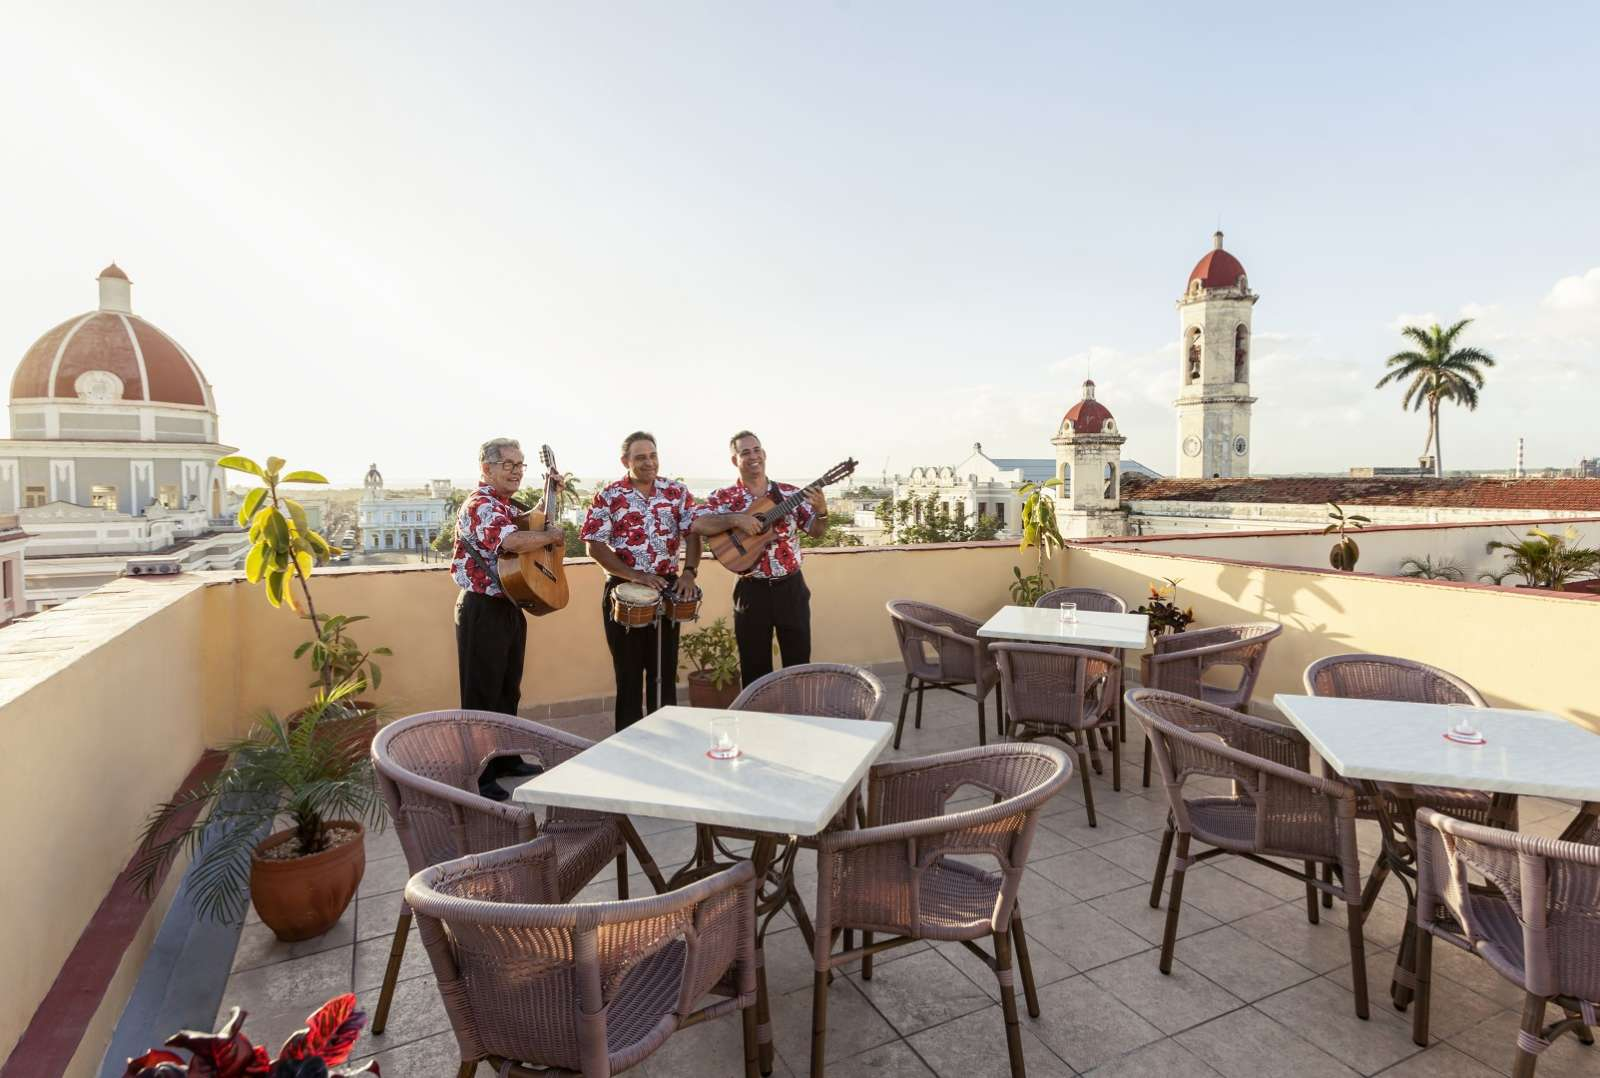 Live band on rooftop terrace of Melia Union hotel in Cienfuegos